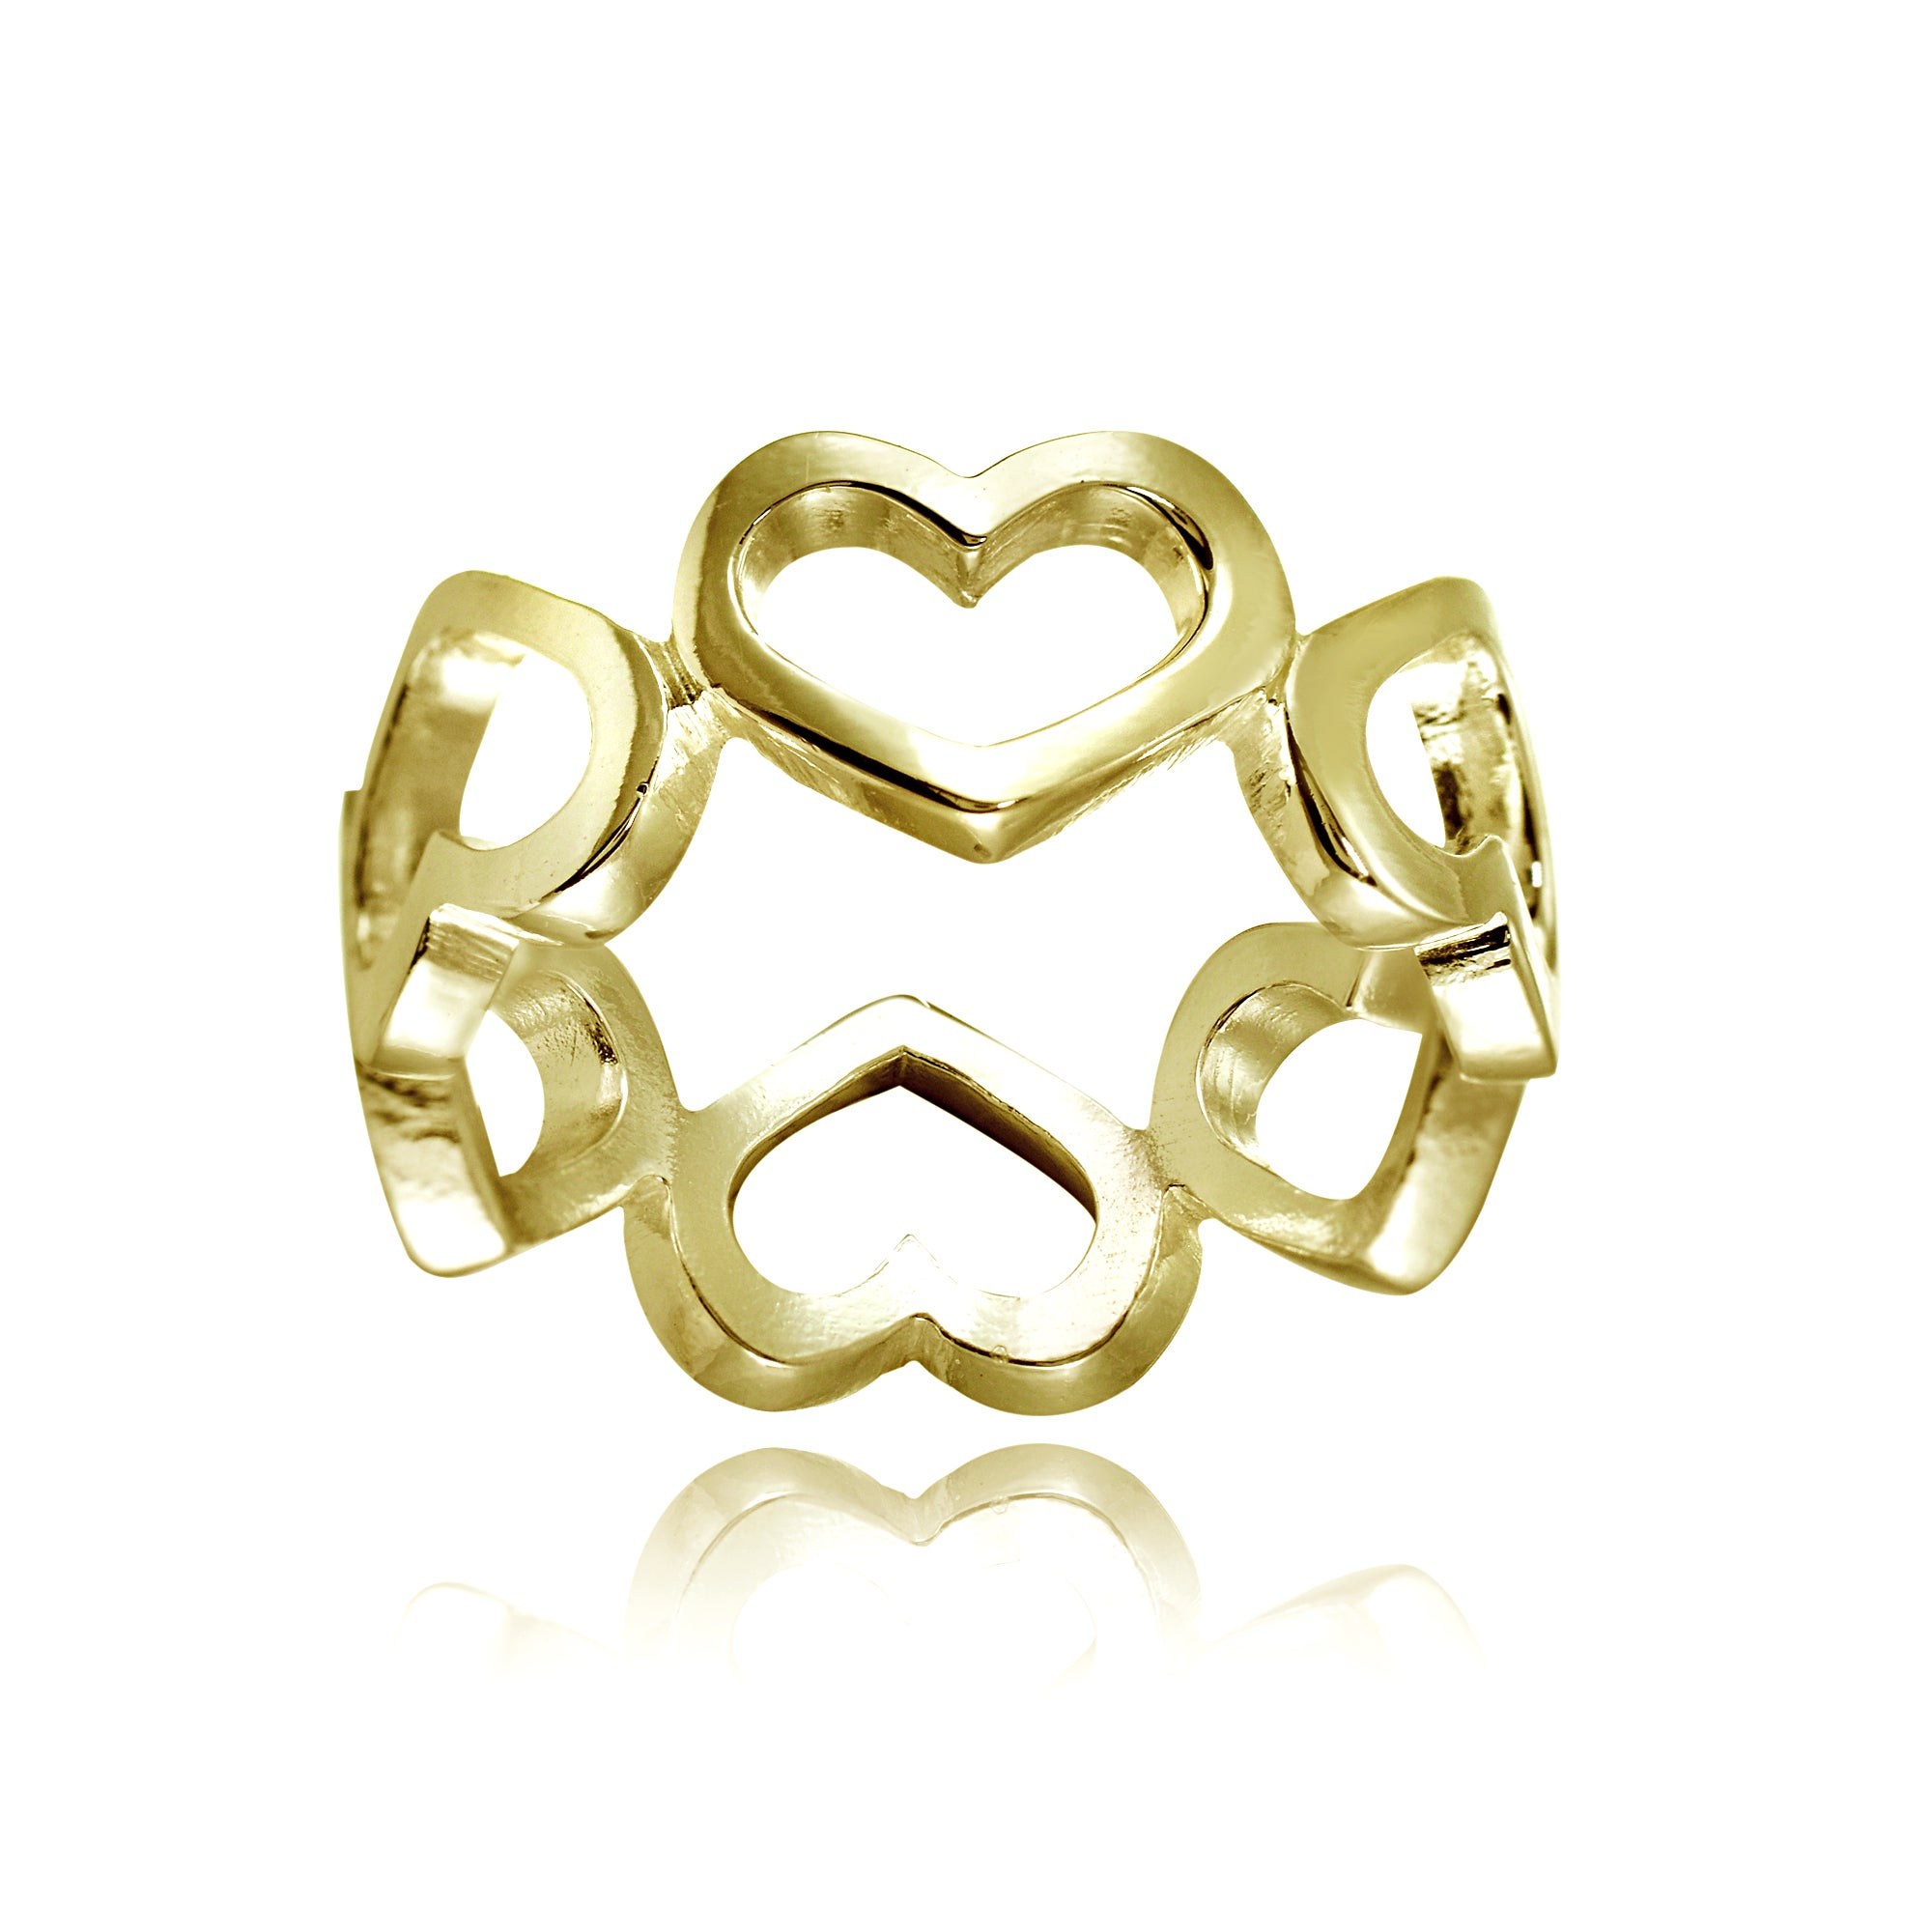 Mondevio Sterling Silver High Polished Open Heart Band Ring For Most Popular Polished Heart Open Rings (View 8 of 25)